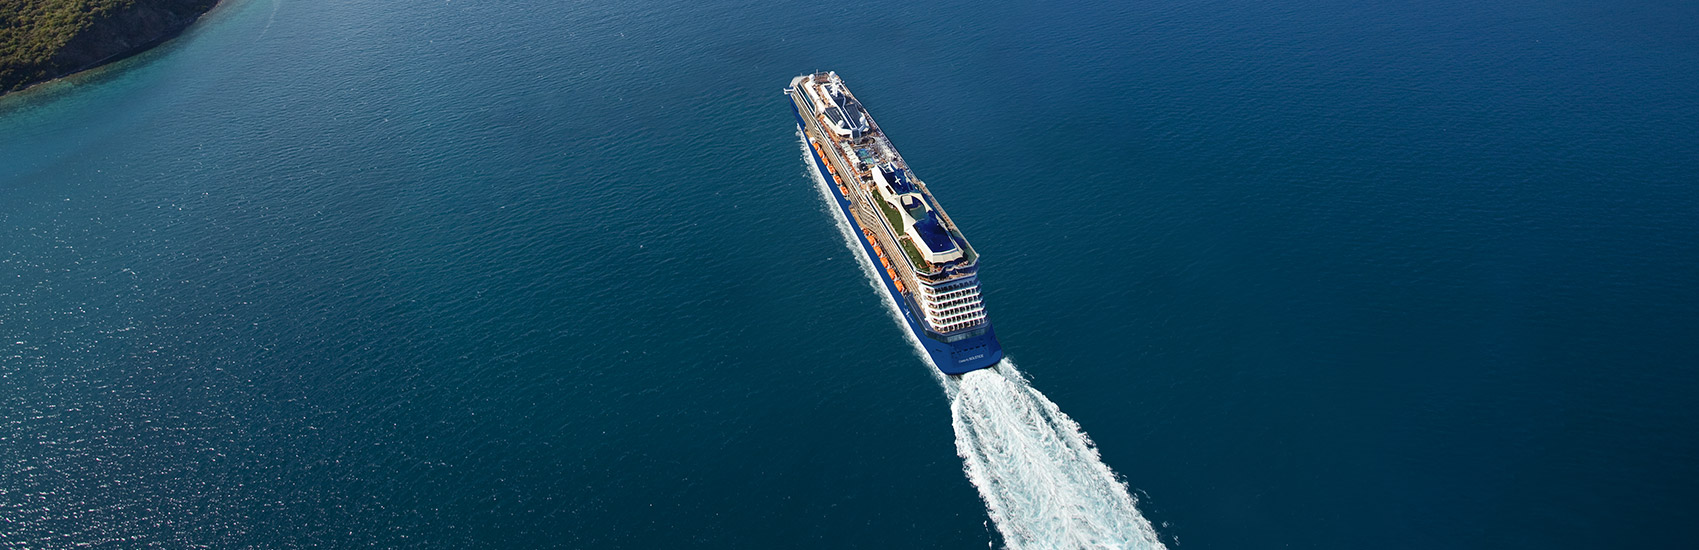 Celebrity Cruises Commitment to Health and Safety